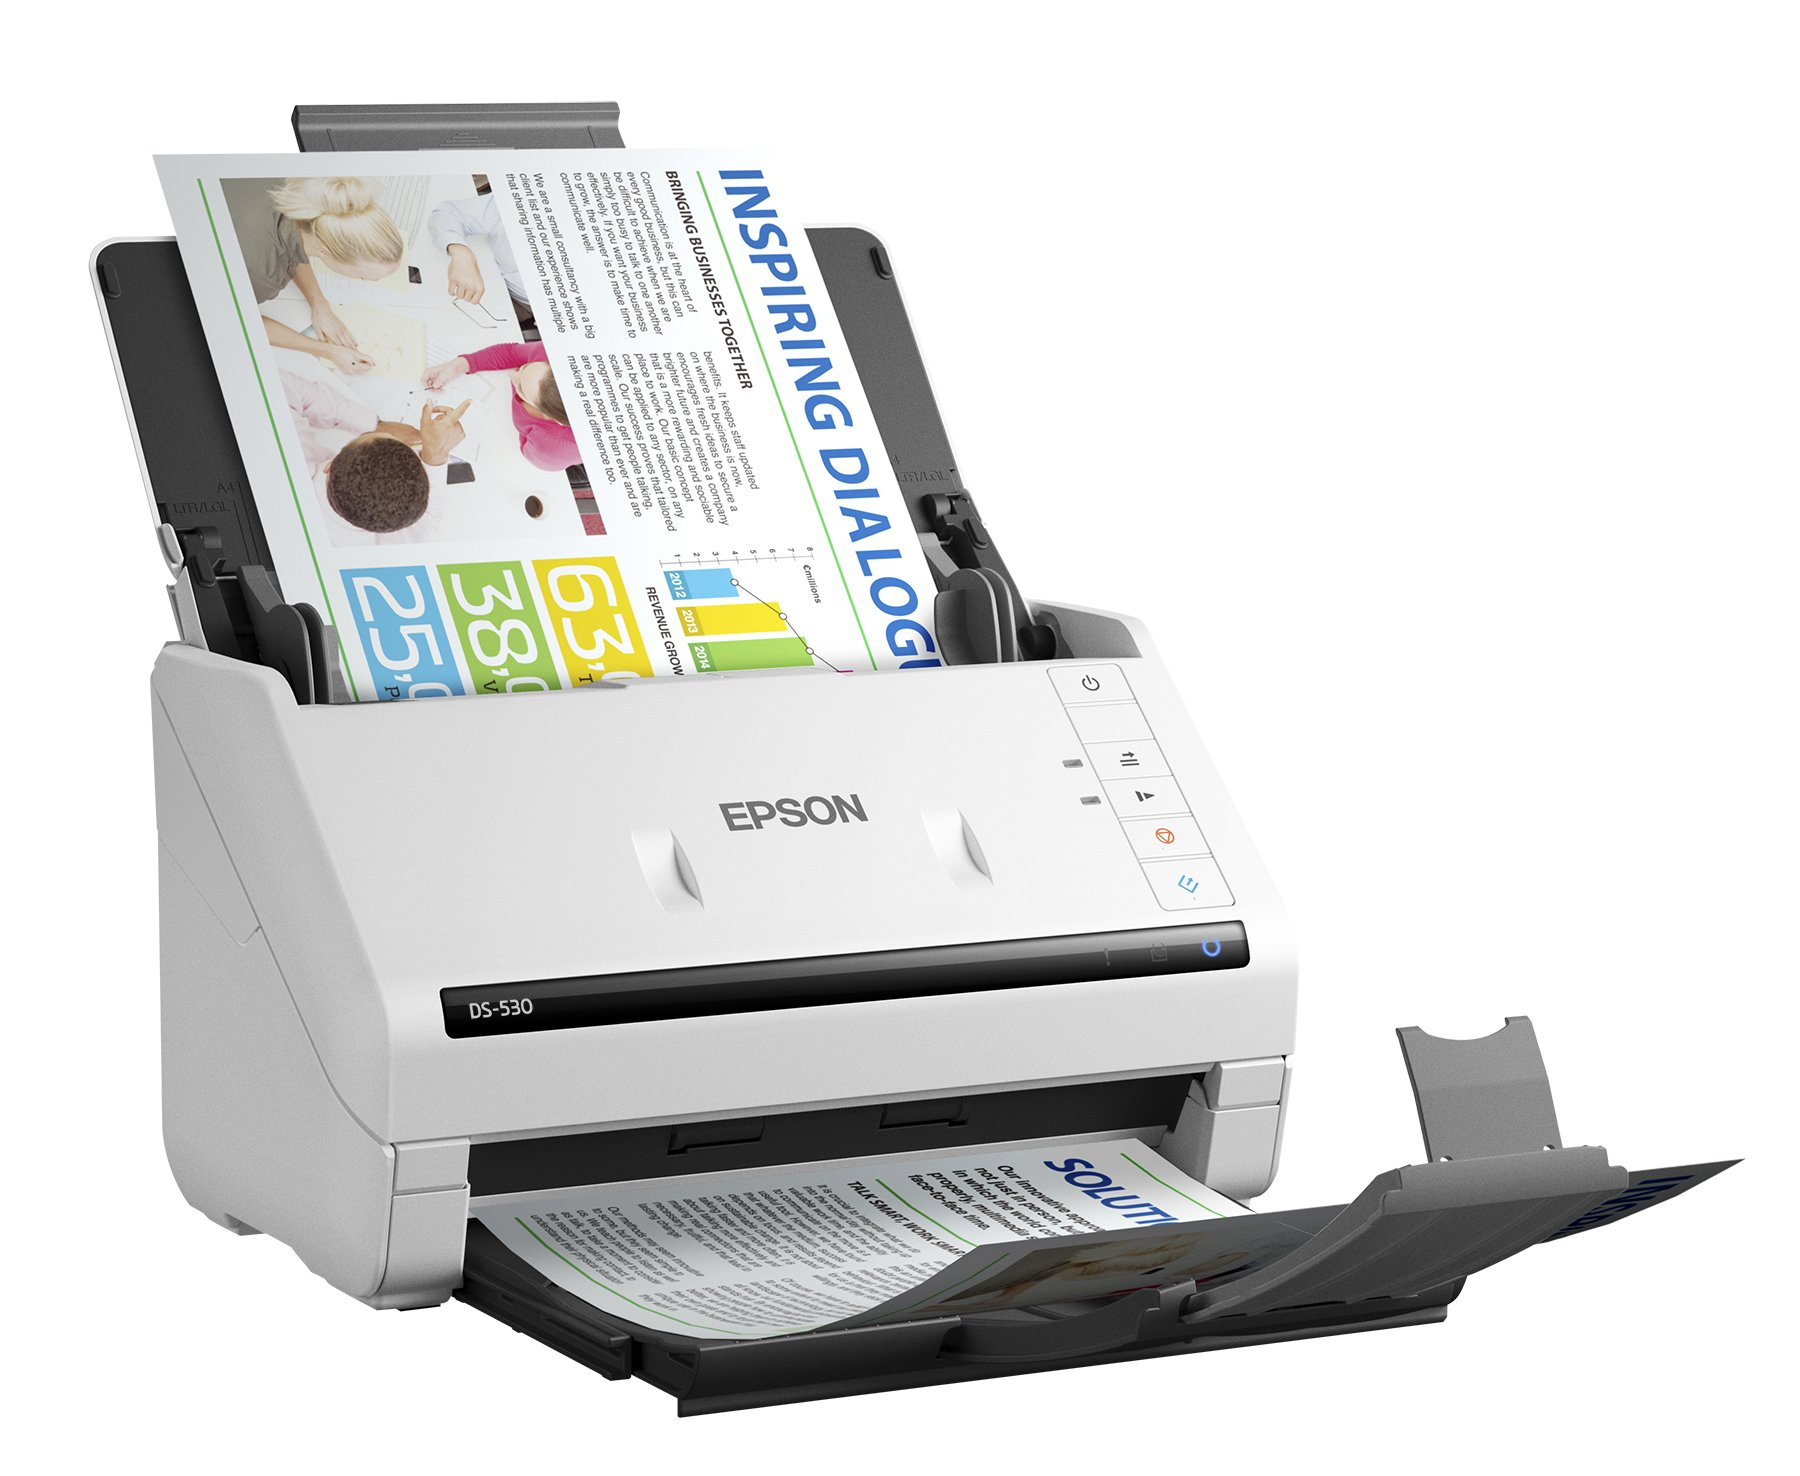 Epson DS-530 Document Scanner: 35ppm, TWAIN & ISIS Drivers, 3-Year Warranty with Next Business Day Replacement by Epson